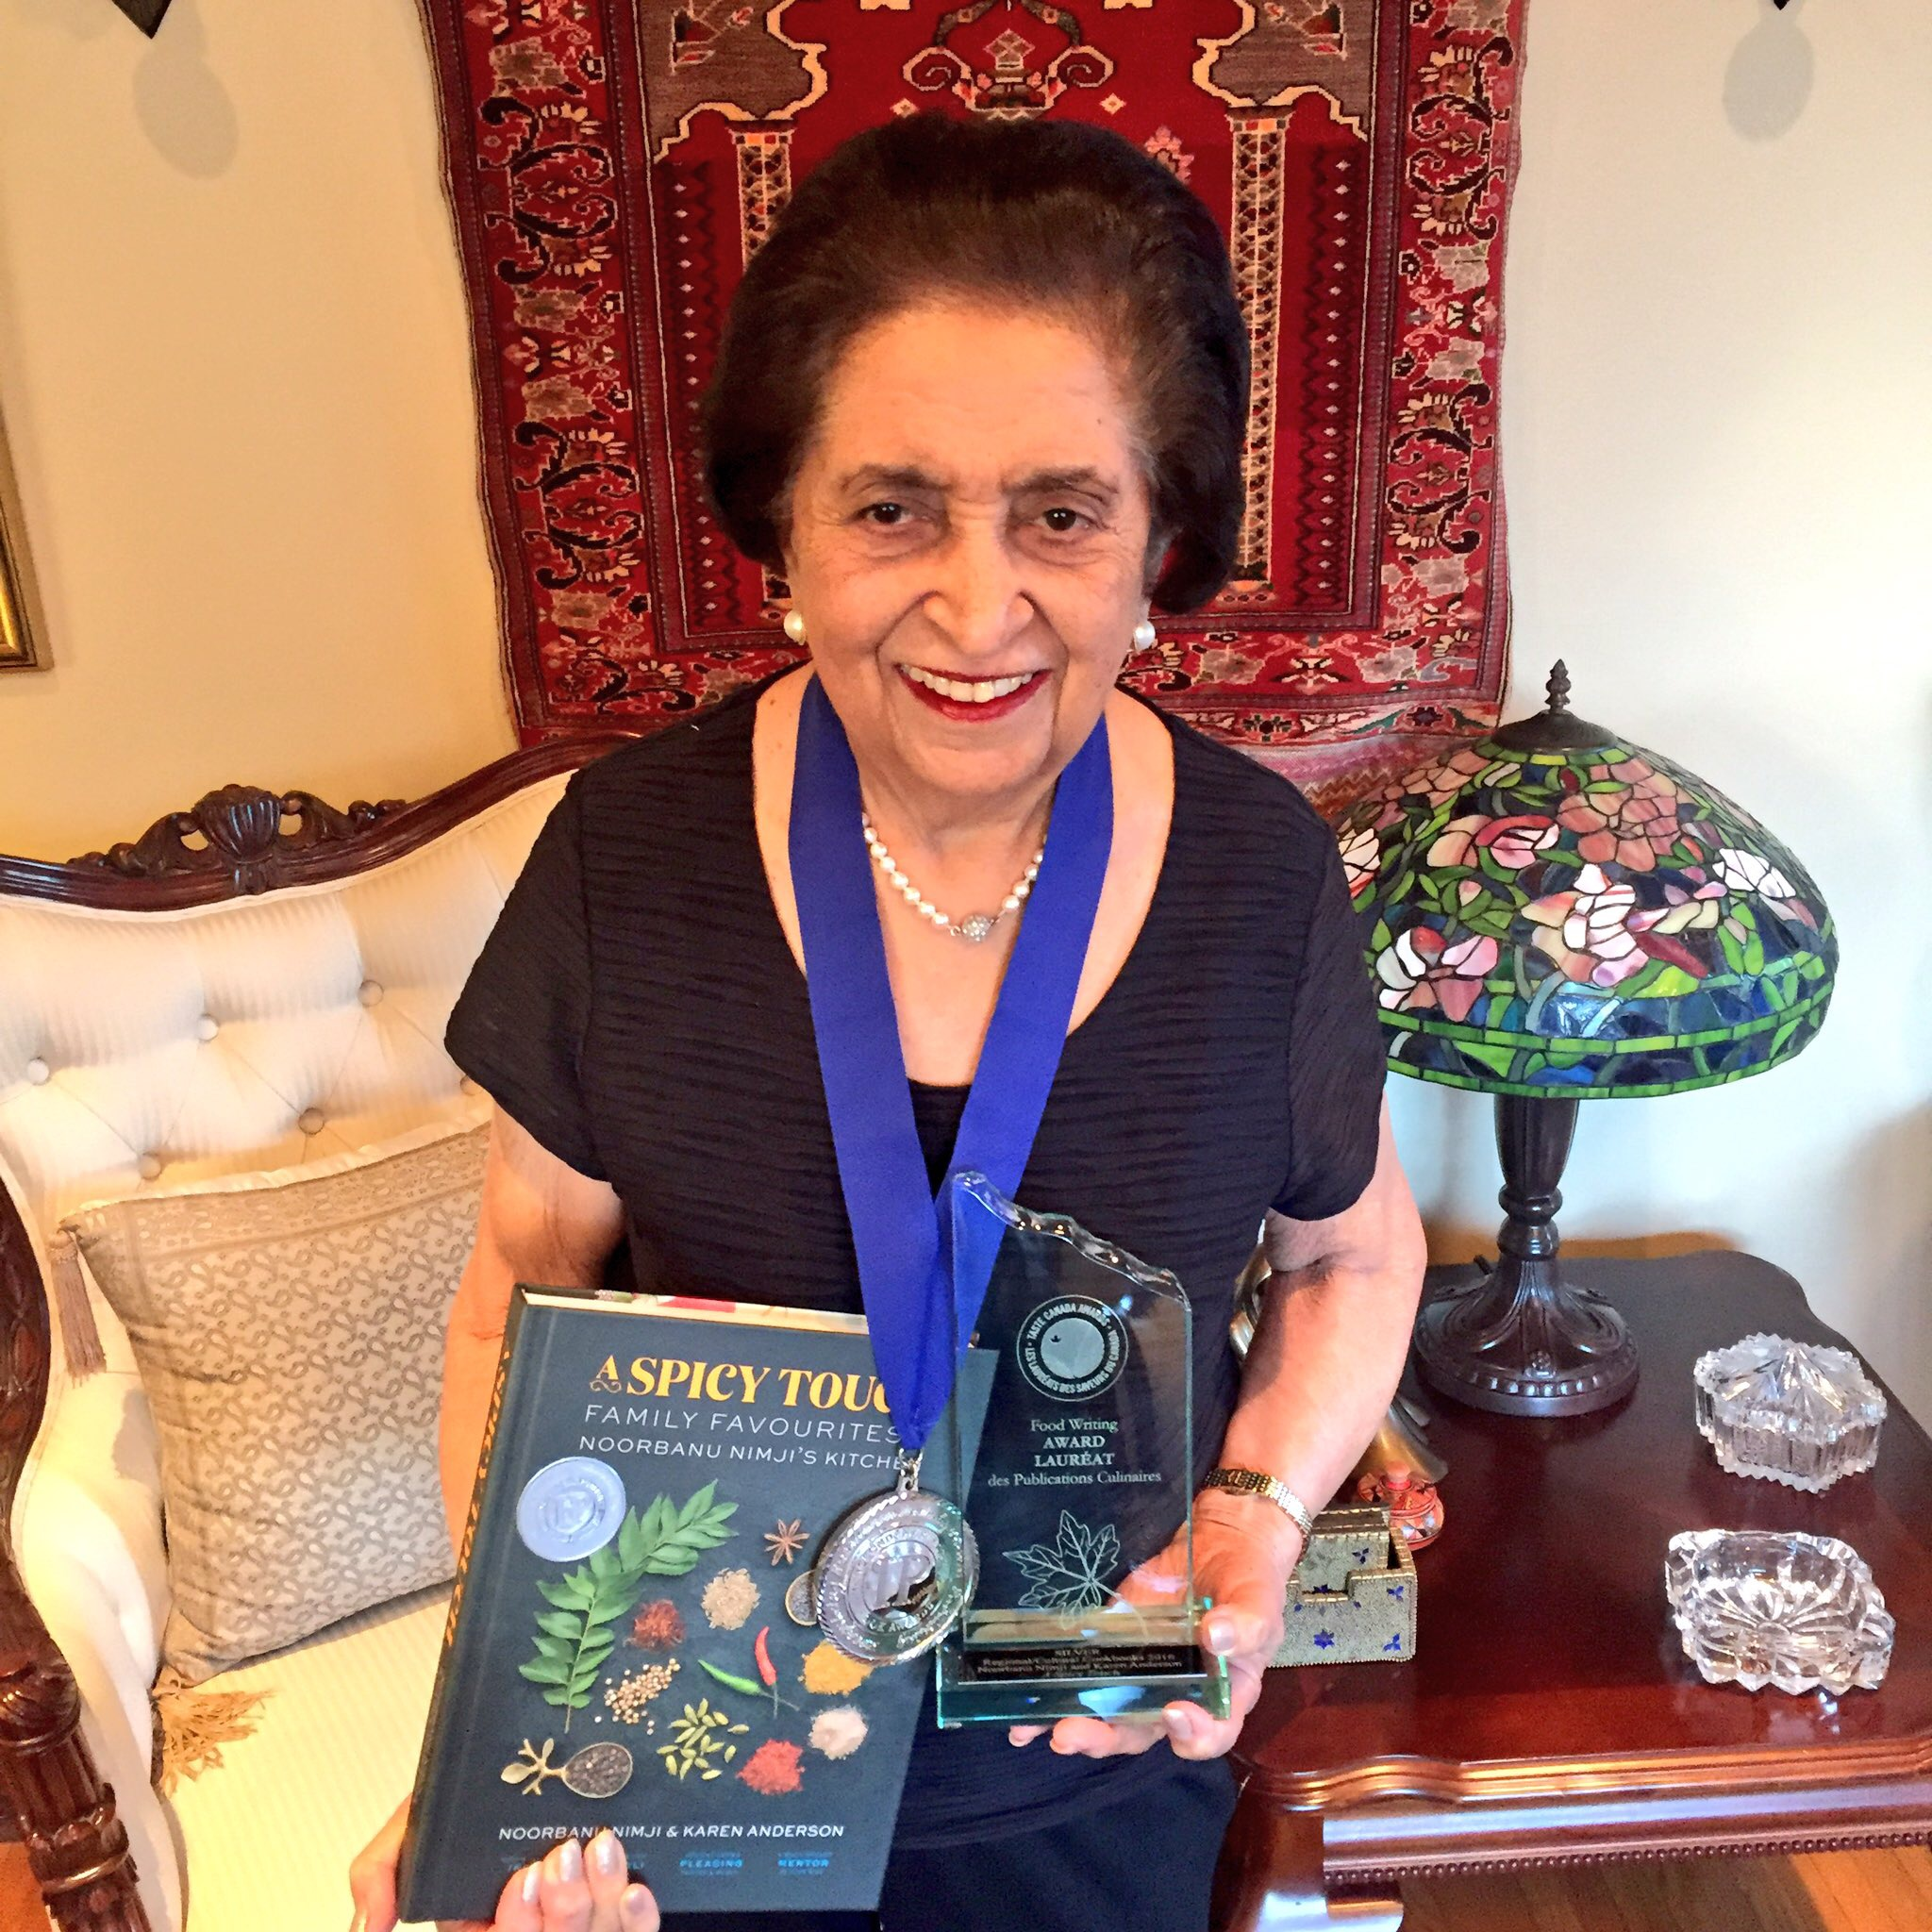 Noorbanu Nimji with Taste Canada Silver Medal for A Spicy Touch cookbook